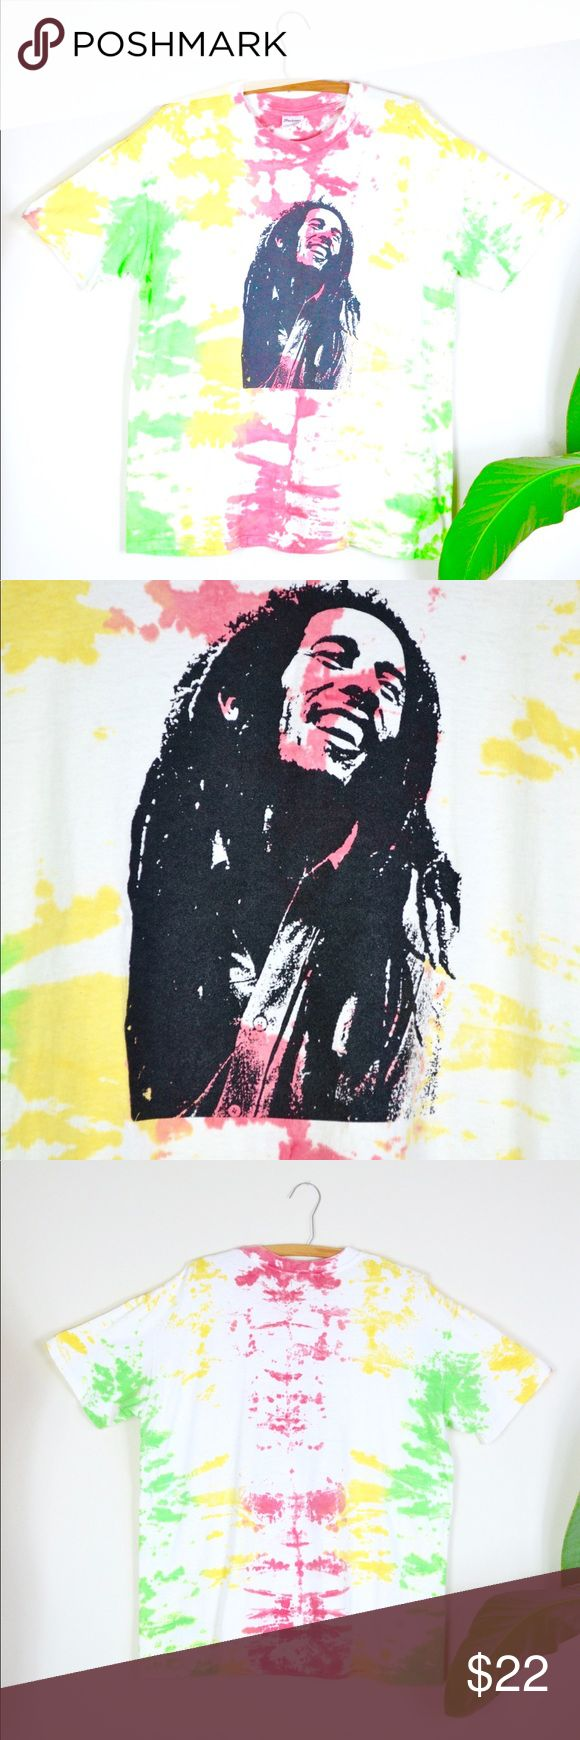 "1990s Bob Marley t shirt 🍁 rasta VTG unisex tee Ya mon! 1990s screen printed Bob Marley tie dye t-shirt with muted rasta colors. adult unisex fit, small stain on one shoulder, otherwise great vintage condition!  FEATURES: label - tedman hi-cru size listed - XL (46/48) made of - 100% cotton made in USA  *vintage sizes vary from todays, so be sure to check measurements to ensure a good fit*  MEASUREMENTS: laying flat, double when appropriate 28.5"" length 23.5"" bust 21"" shoulder to shoulder…"